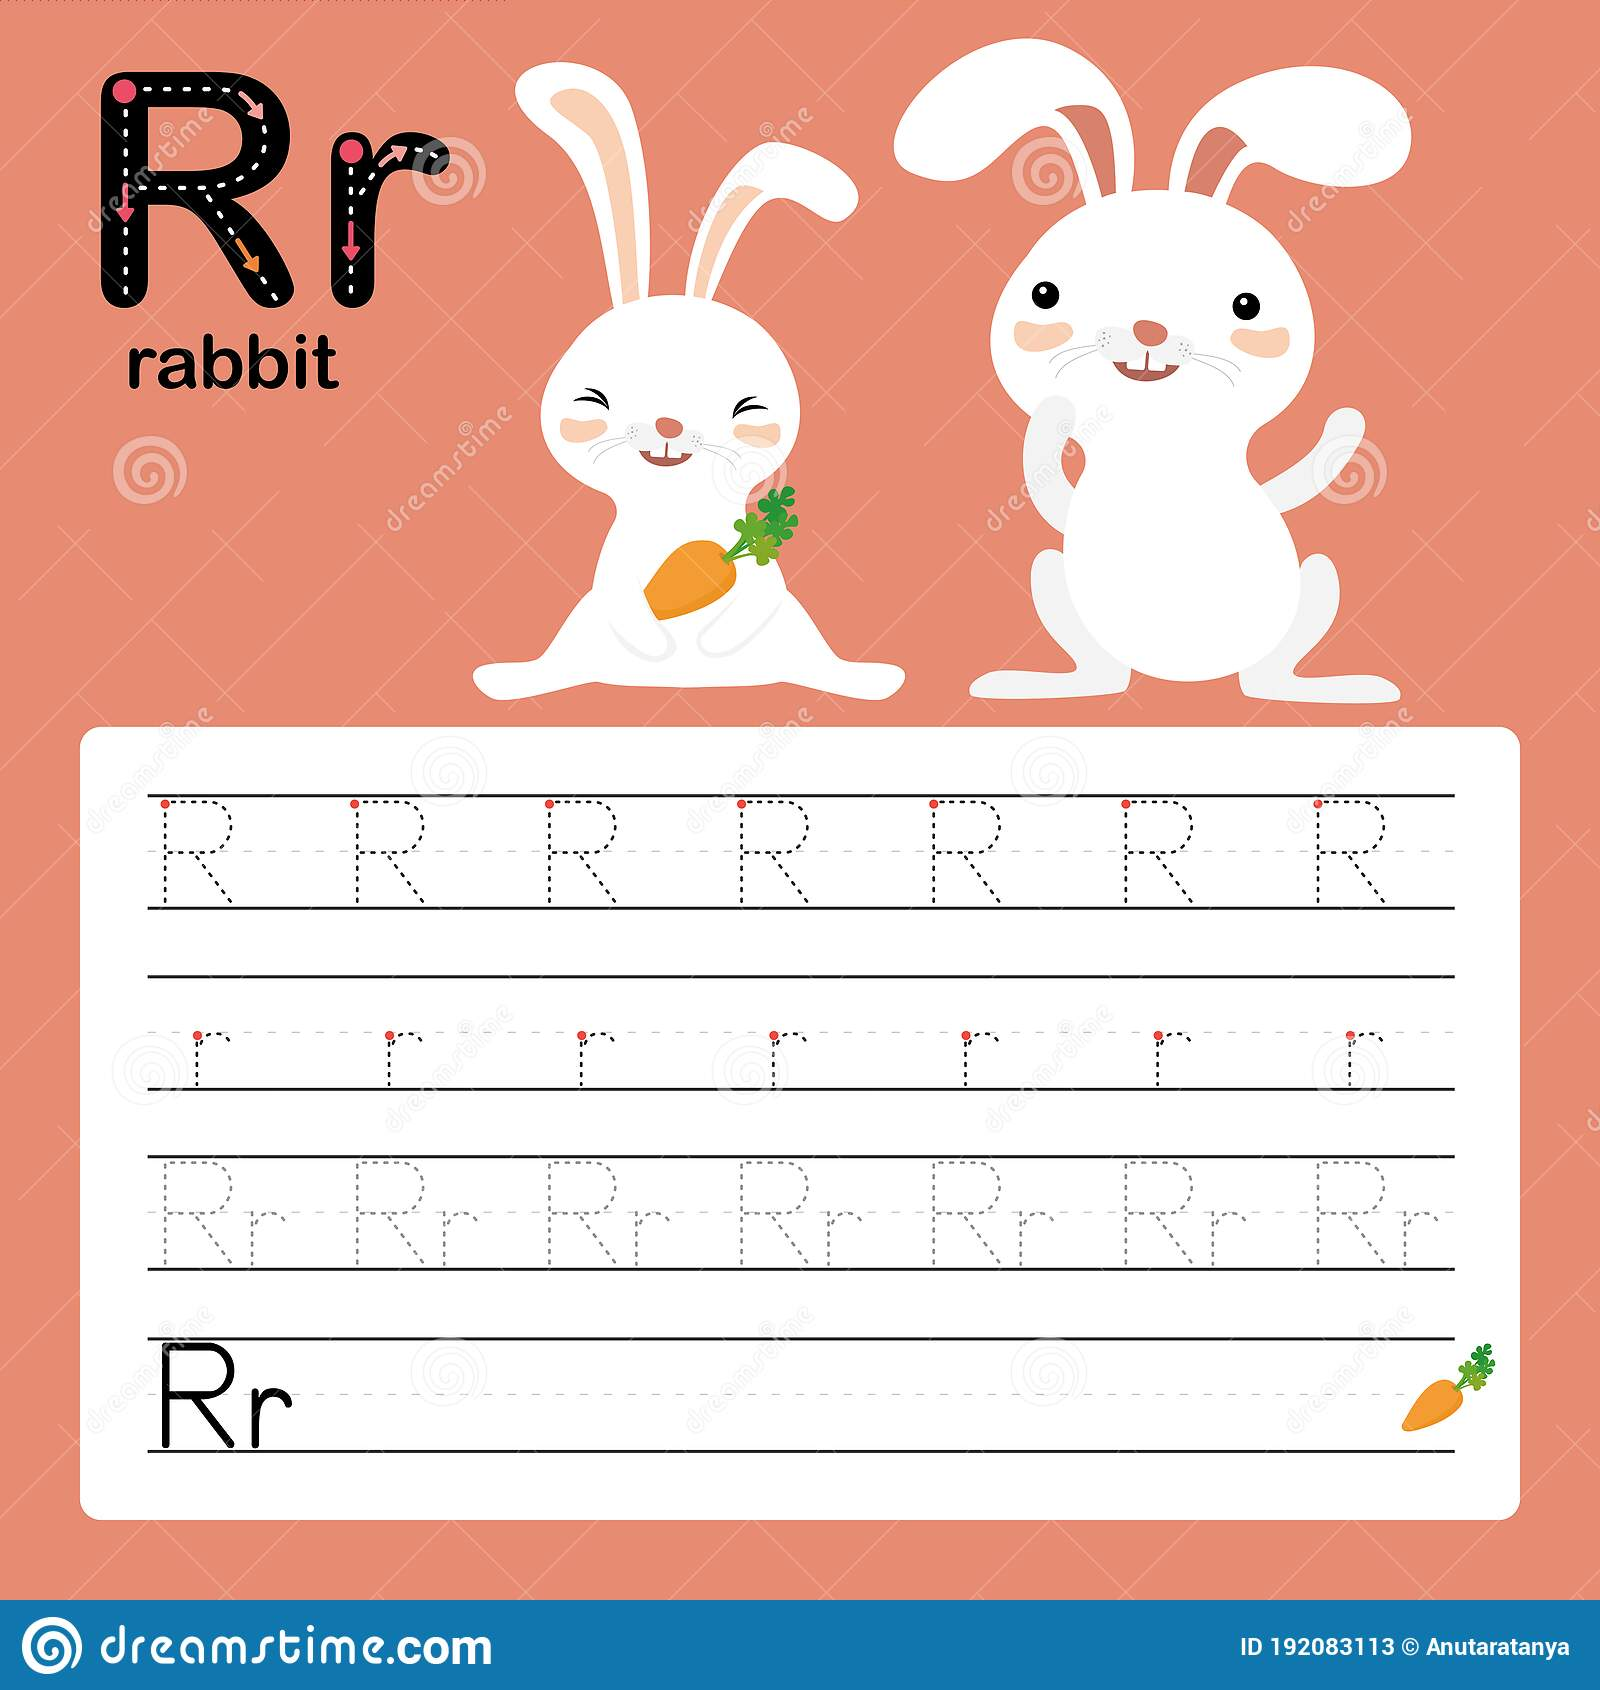 R Rabbit Alphabet Tracing Worksheet For Preschool And